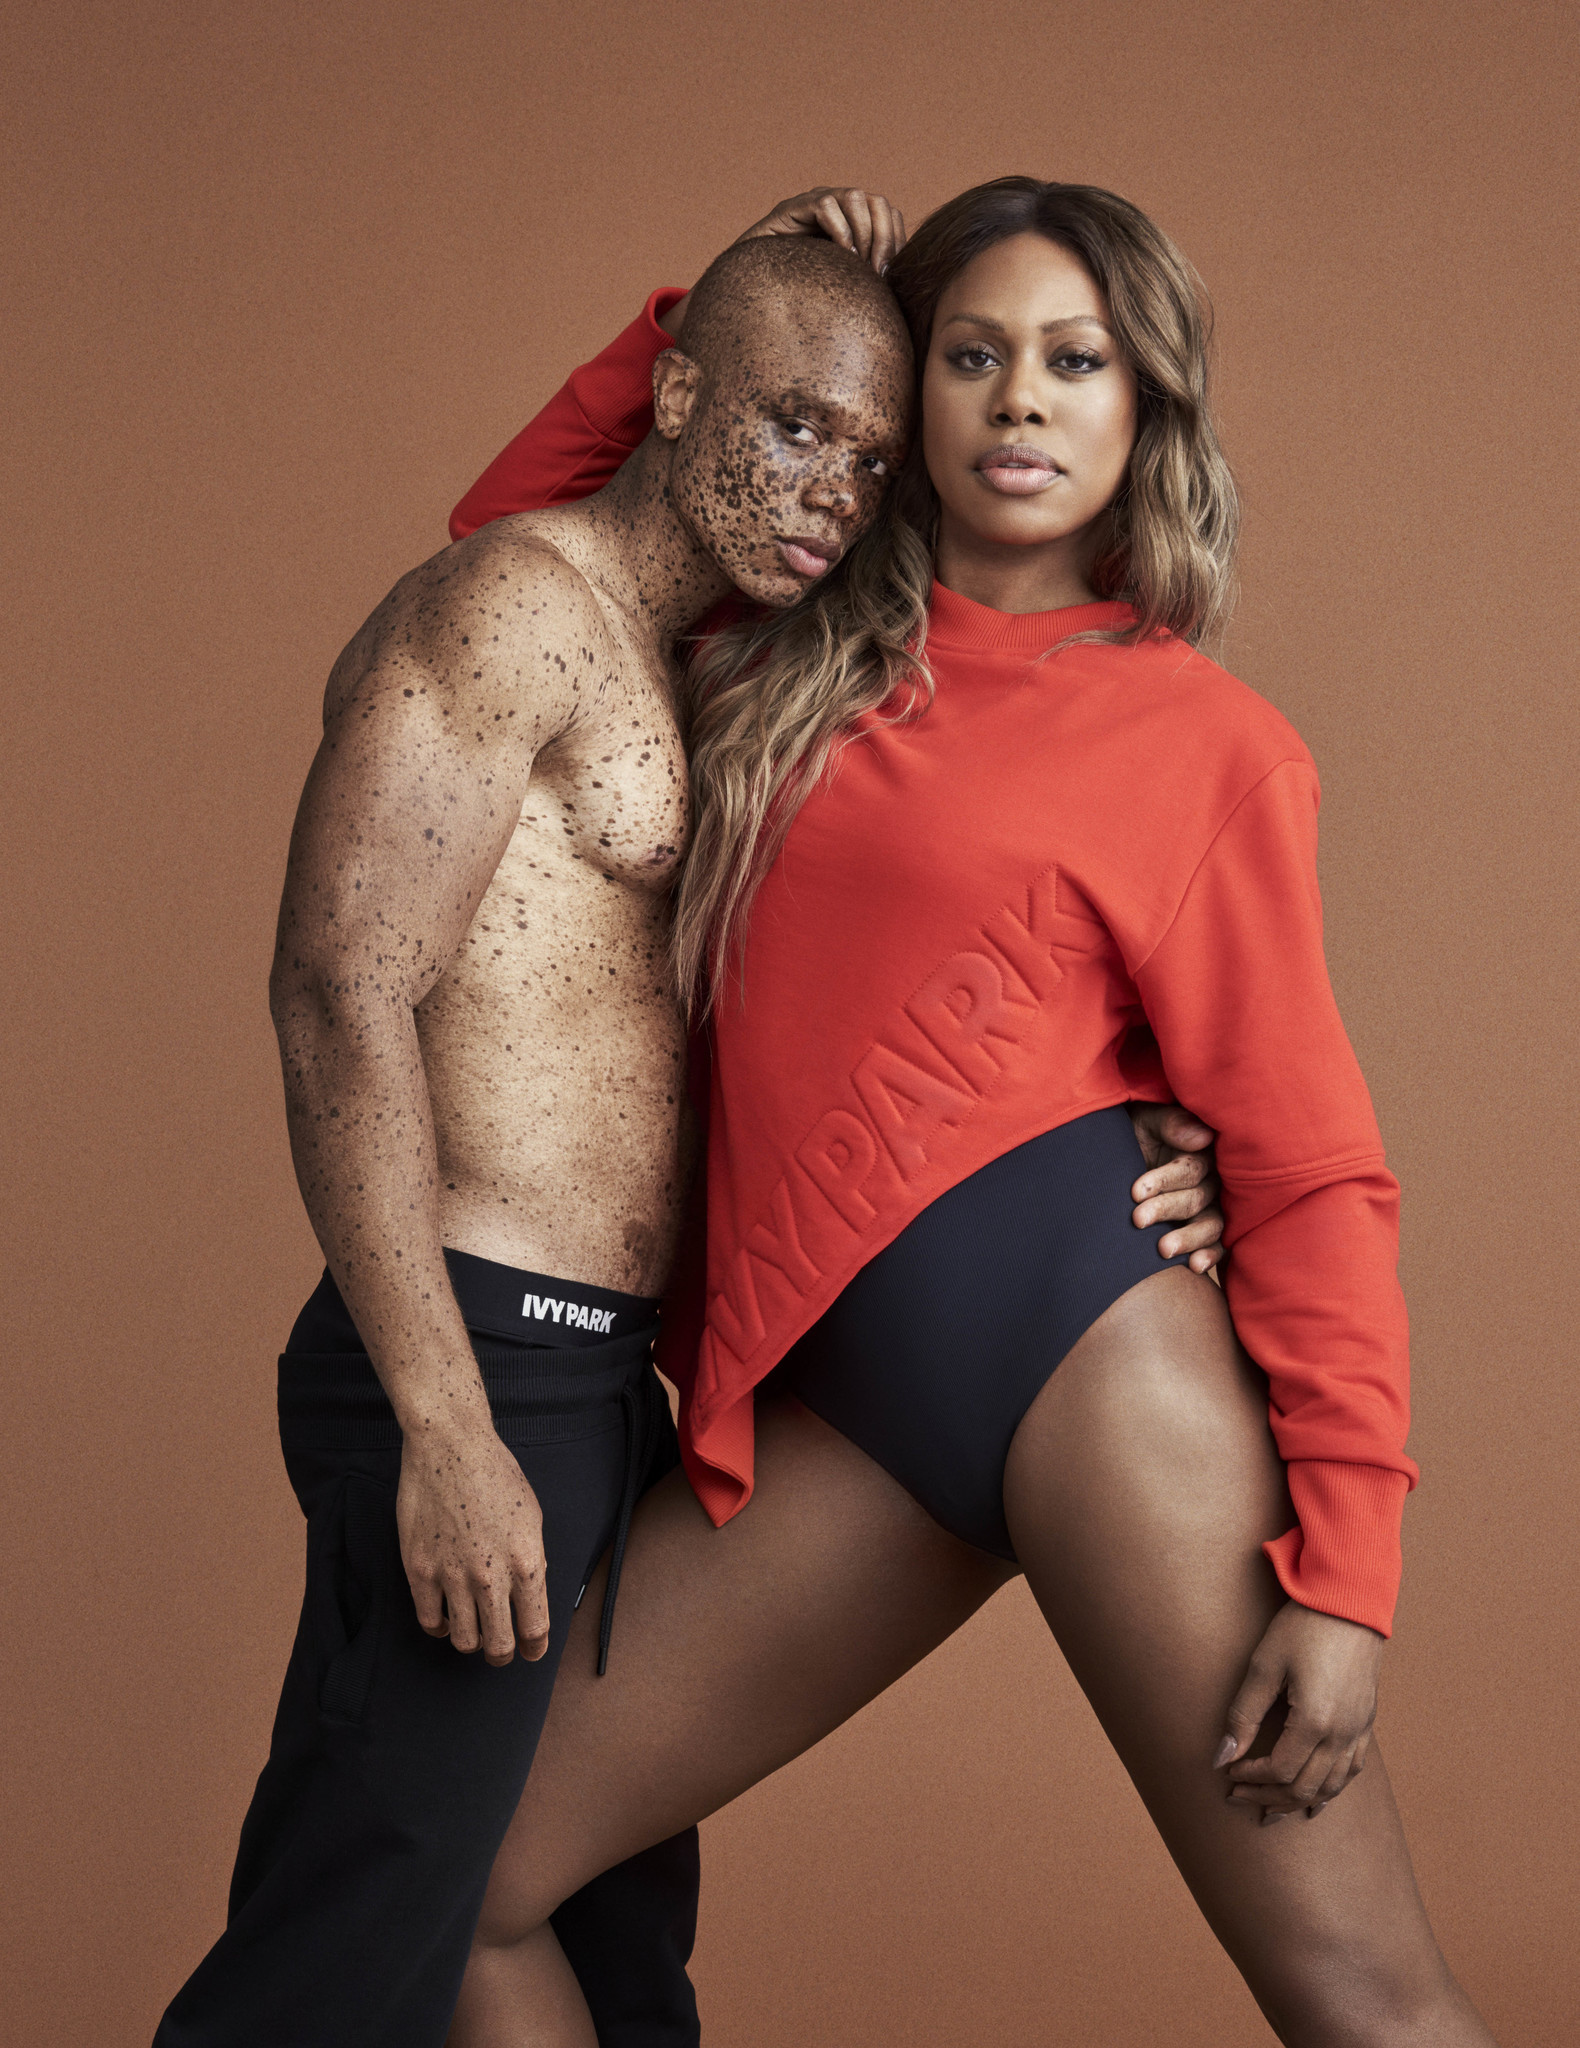 Model Ralph Souffrant and Laverne Cox in an Ivy Park campaign photograph.